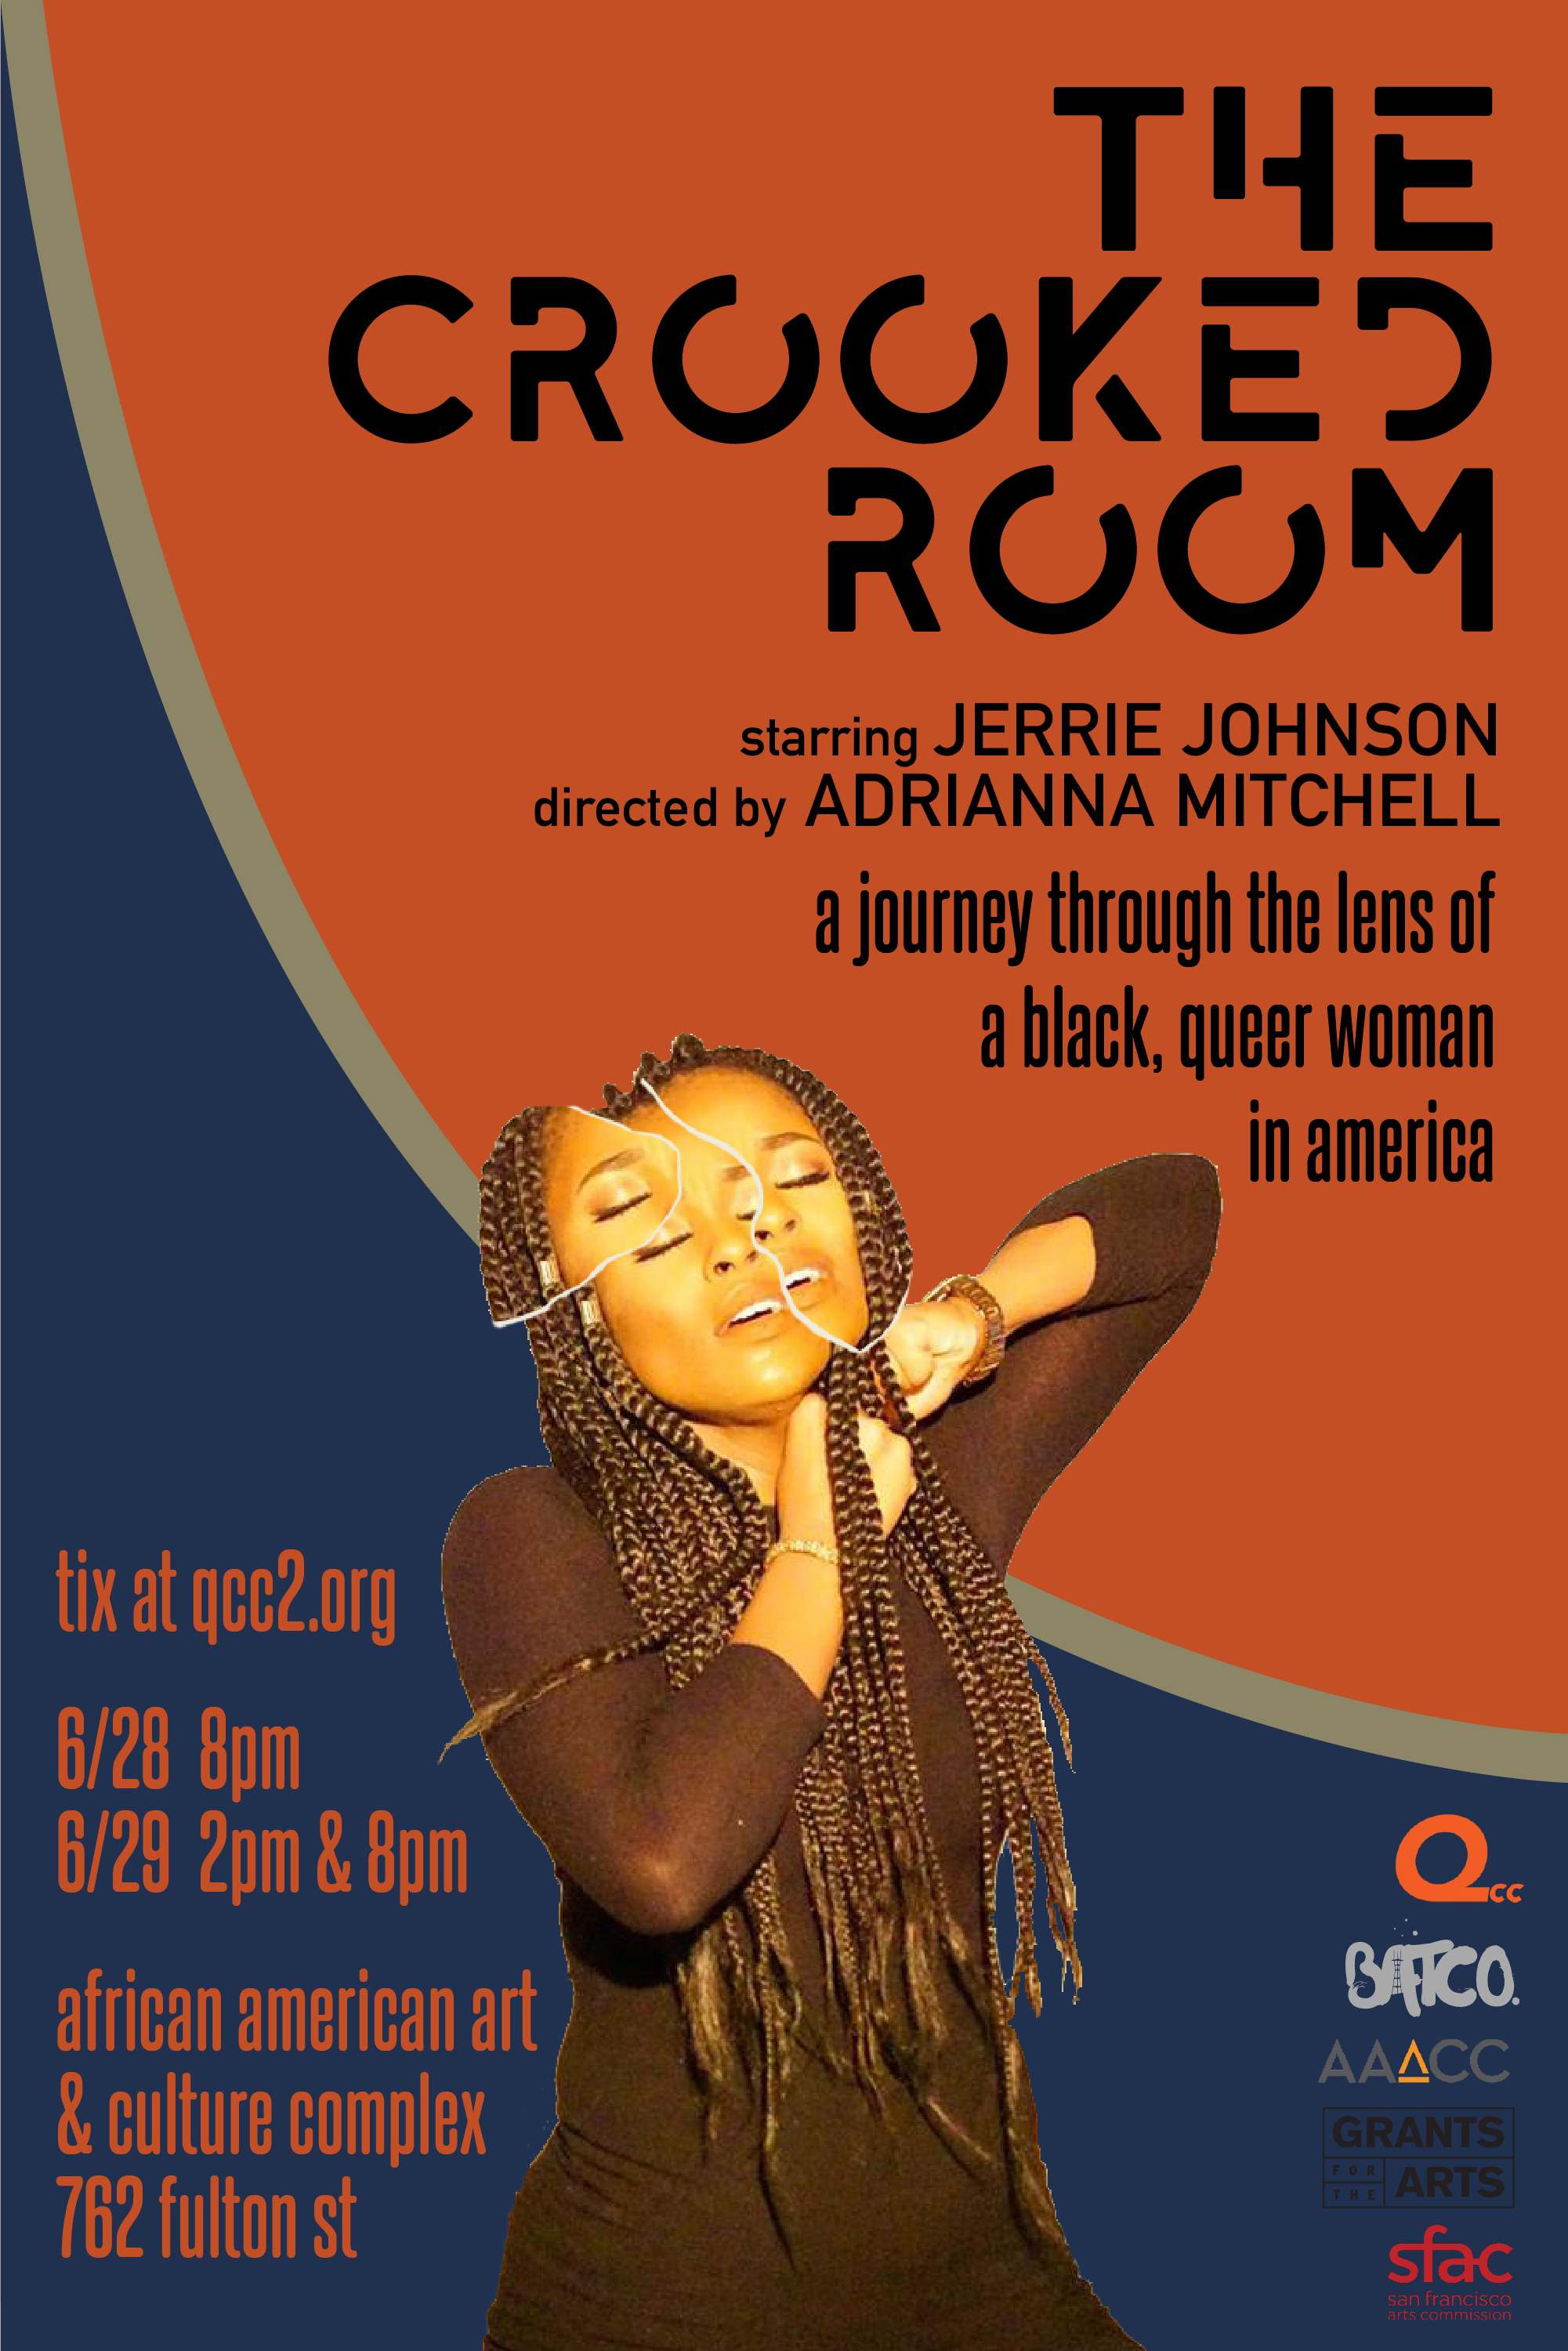 Starring jerrie johnson &Directed by Adrianna Mitchell - QCC + BATCO @ AAACCThe Crooked Room, a collaborative surreal theatrical experience, created by 2 A.C.T. MFA alumni, takes us on the journey of a Queer Black woman fasting alone in a room attempts to take vows of silence but is plagued by the loud thoughts that surface. Brutality at the core of the American Dream and the generational debris that follows comes to a head in The Crooked Room, where